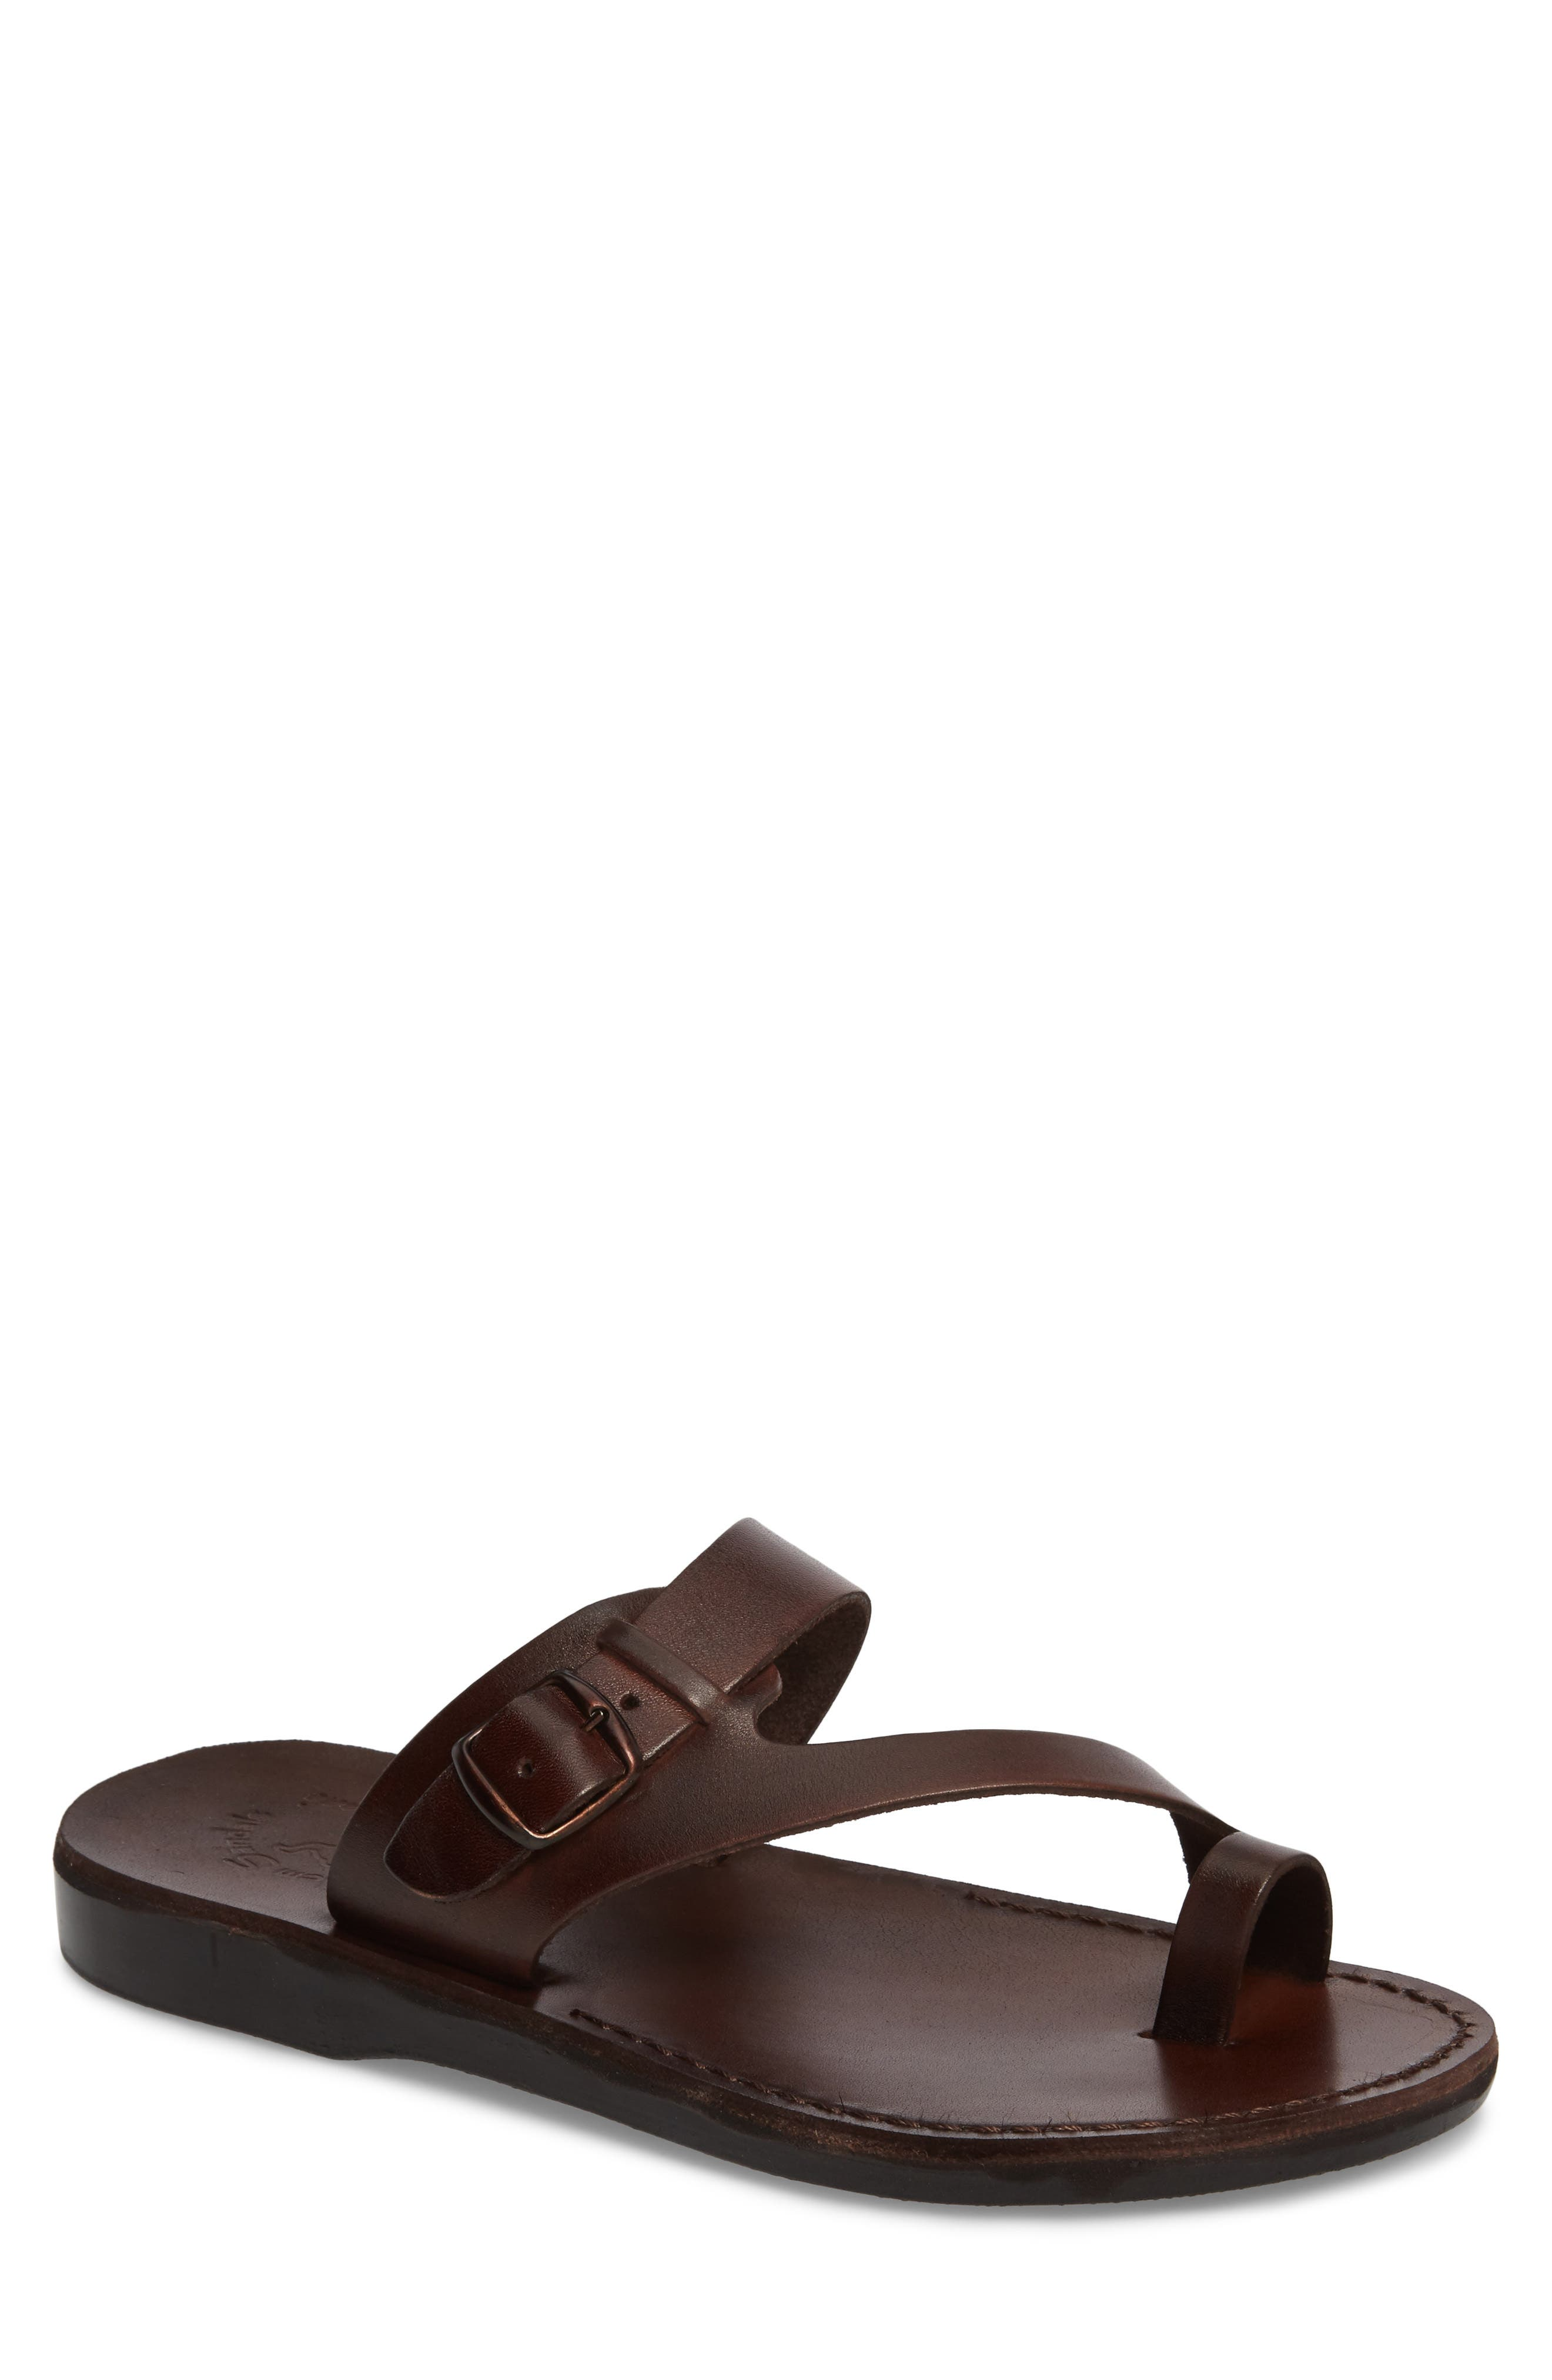 Abner Toe Loop Sandal, Main, color, BROWN LEATHER